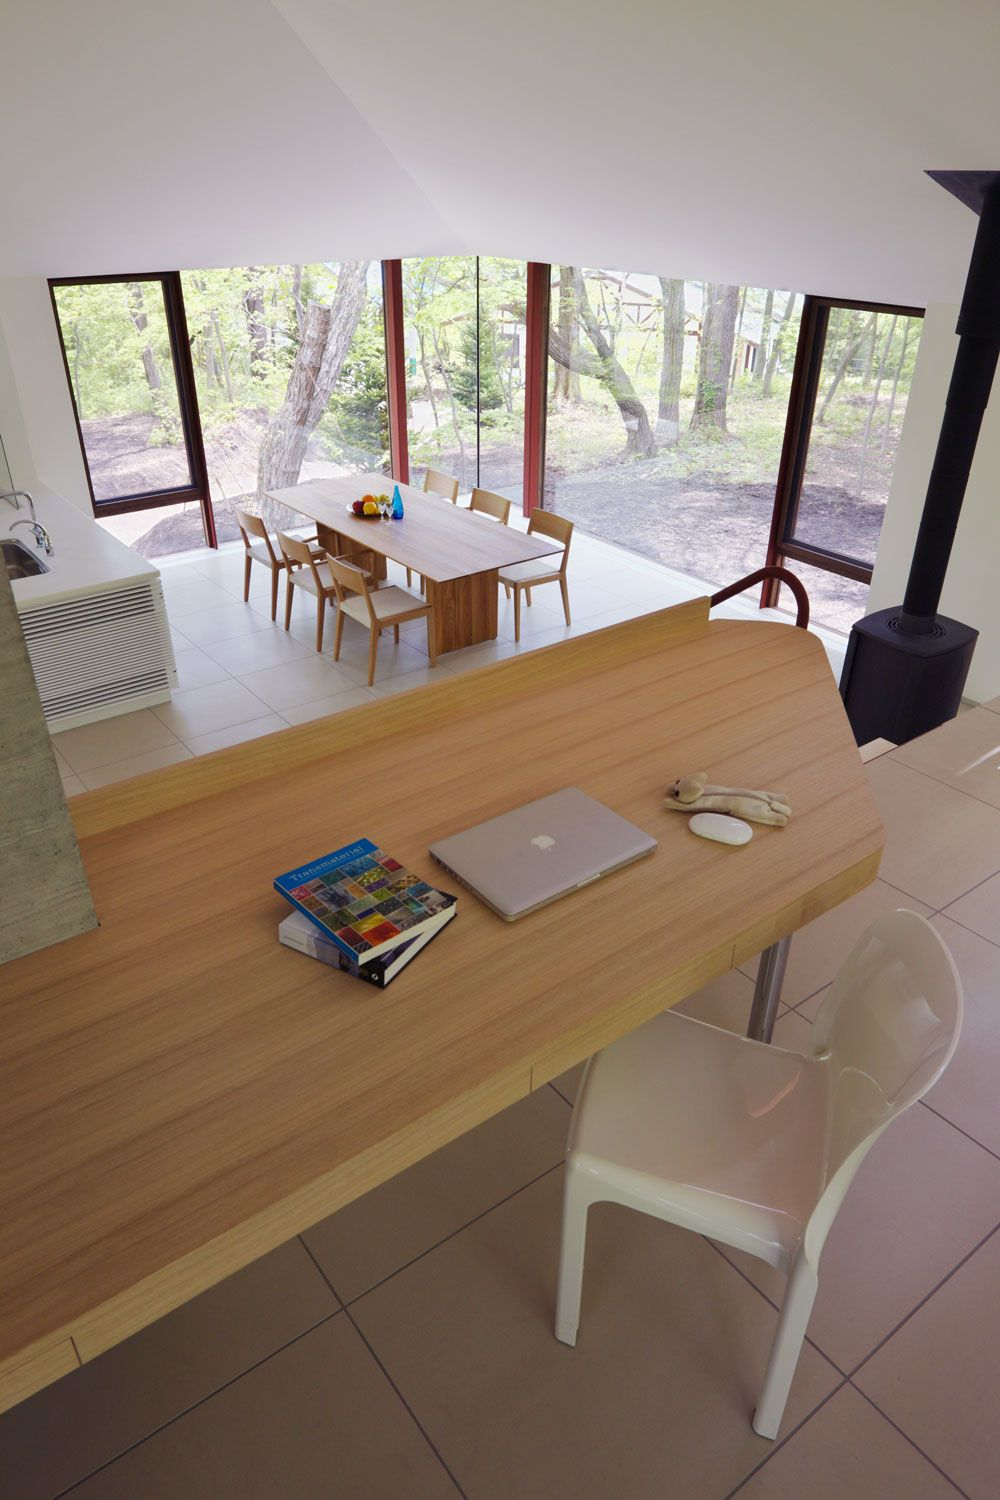 Table, Dining Area, Hilltop Home in Karuizawa, Japan